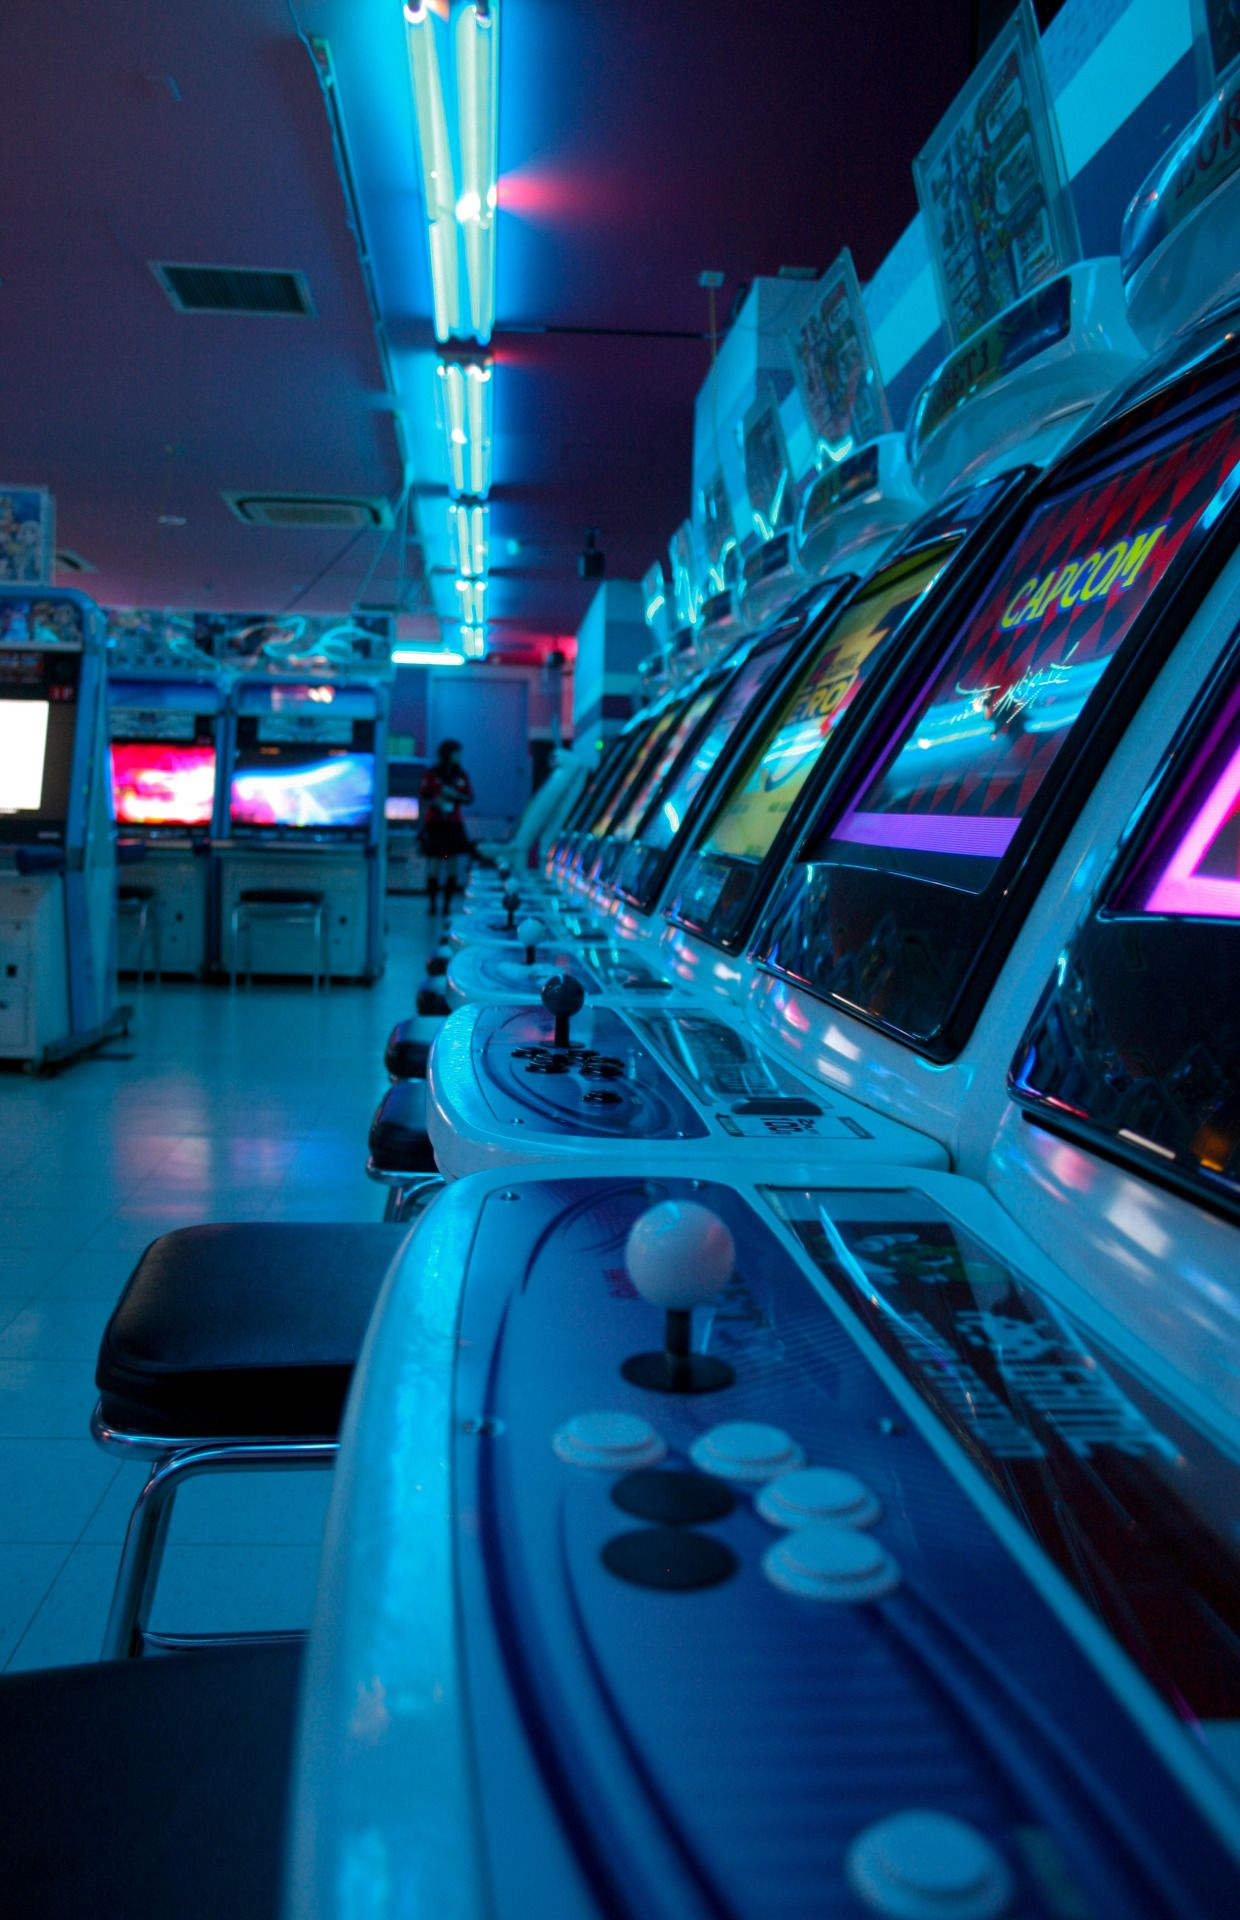 Arcade Aesthetic Blue Glow Aesthetic colors, Blue